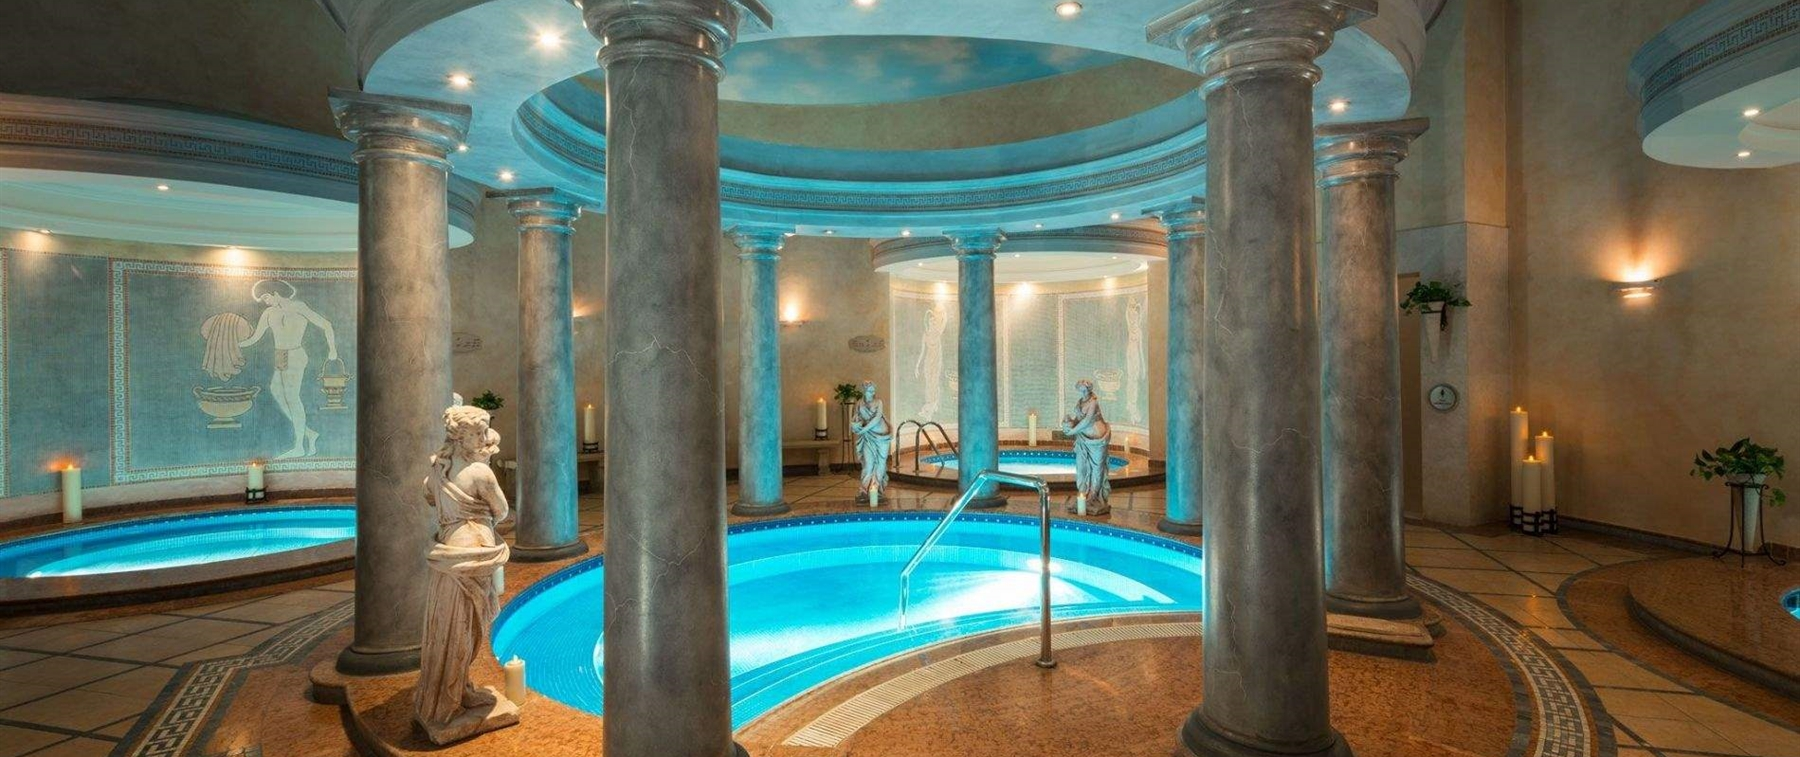 Caracalla Spa Le Royal Méridien 789